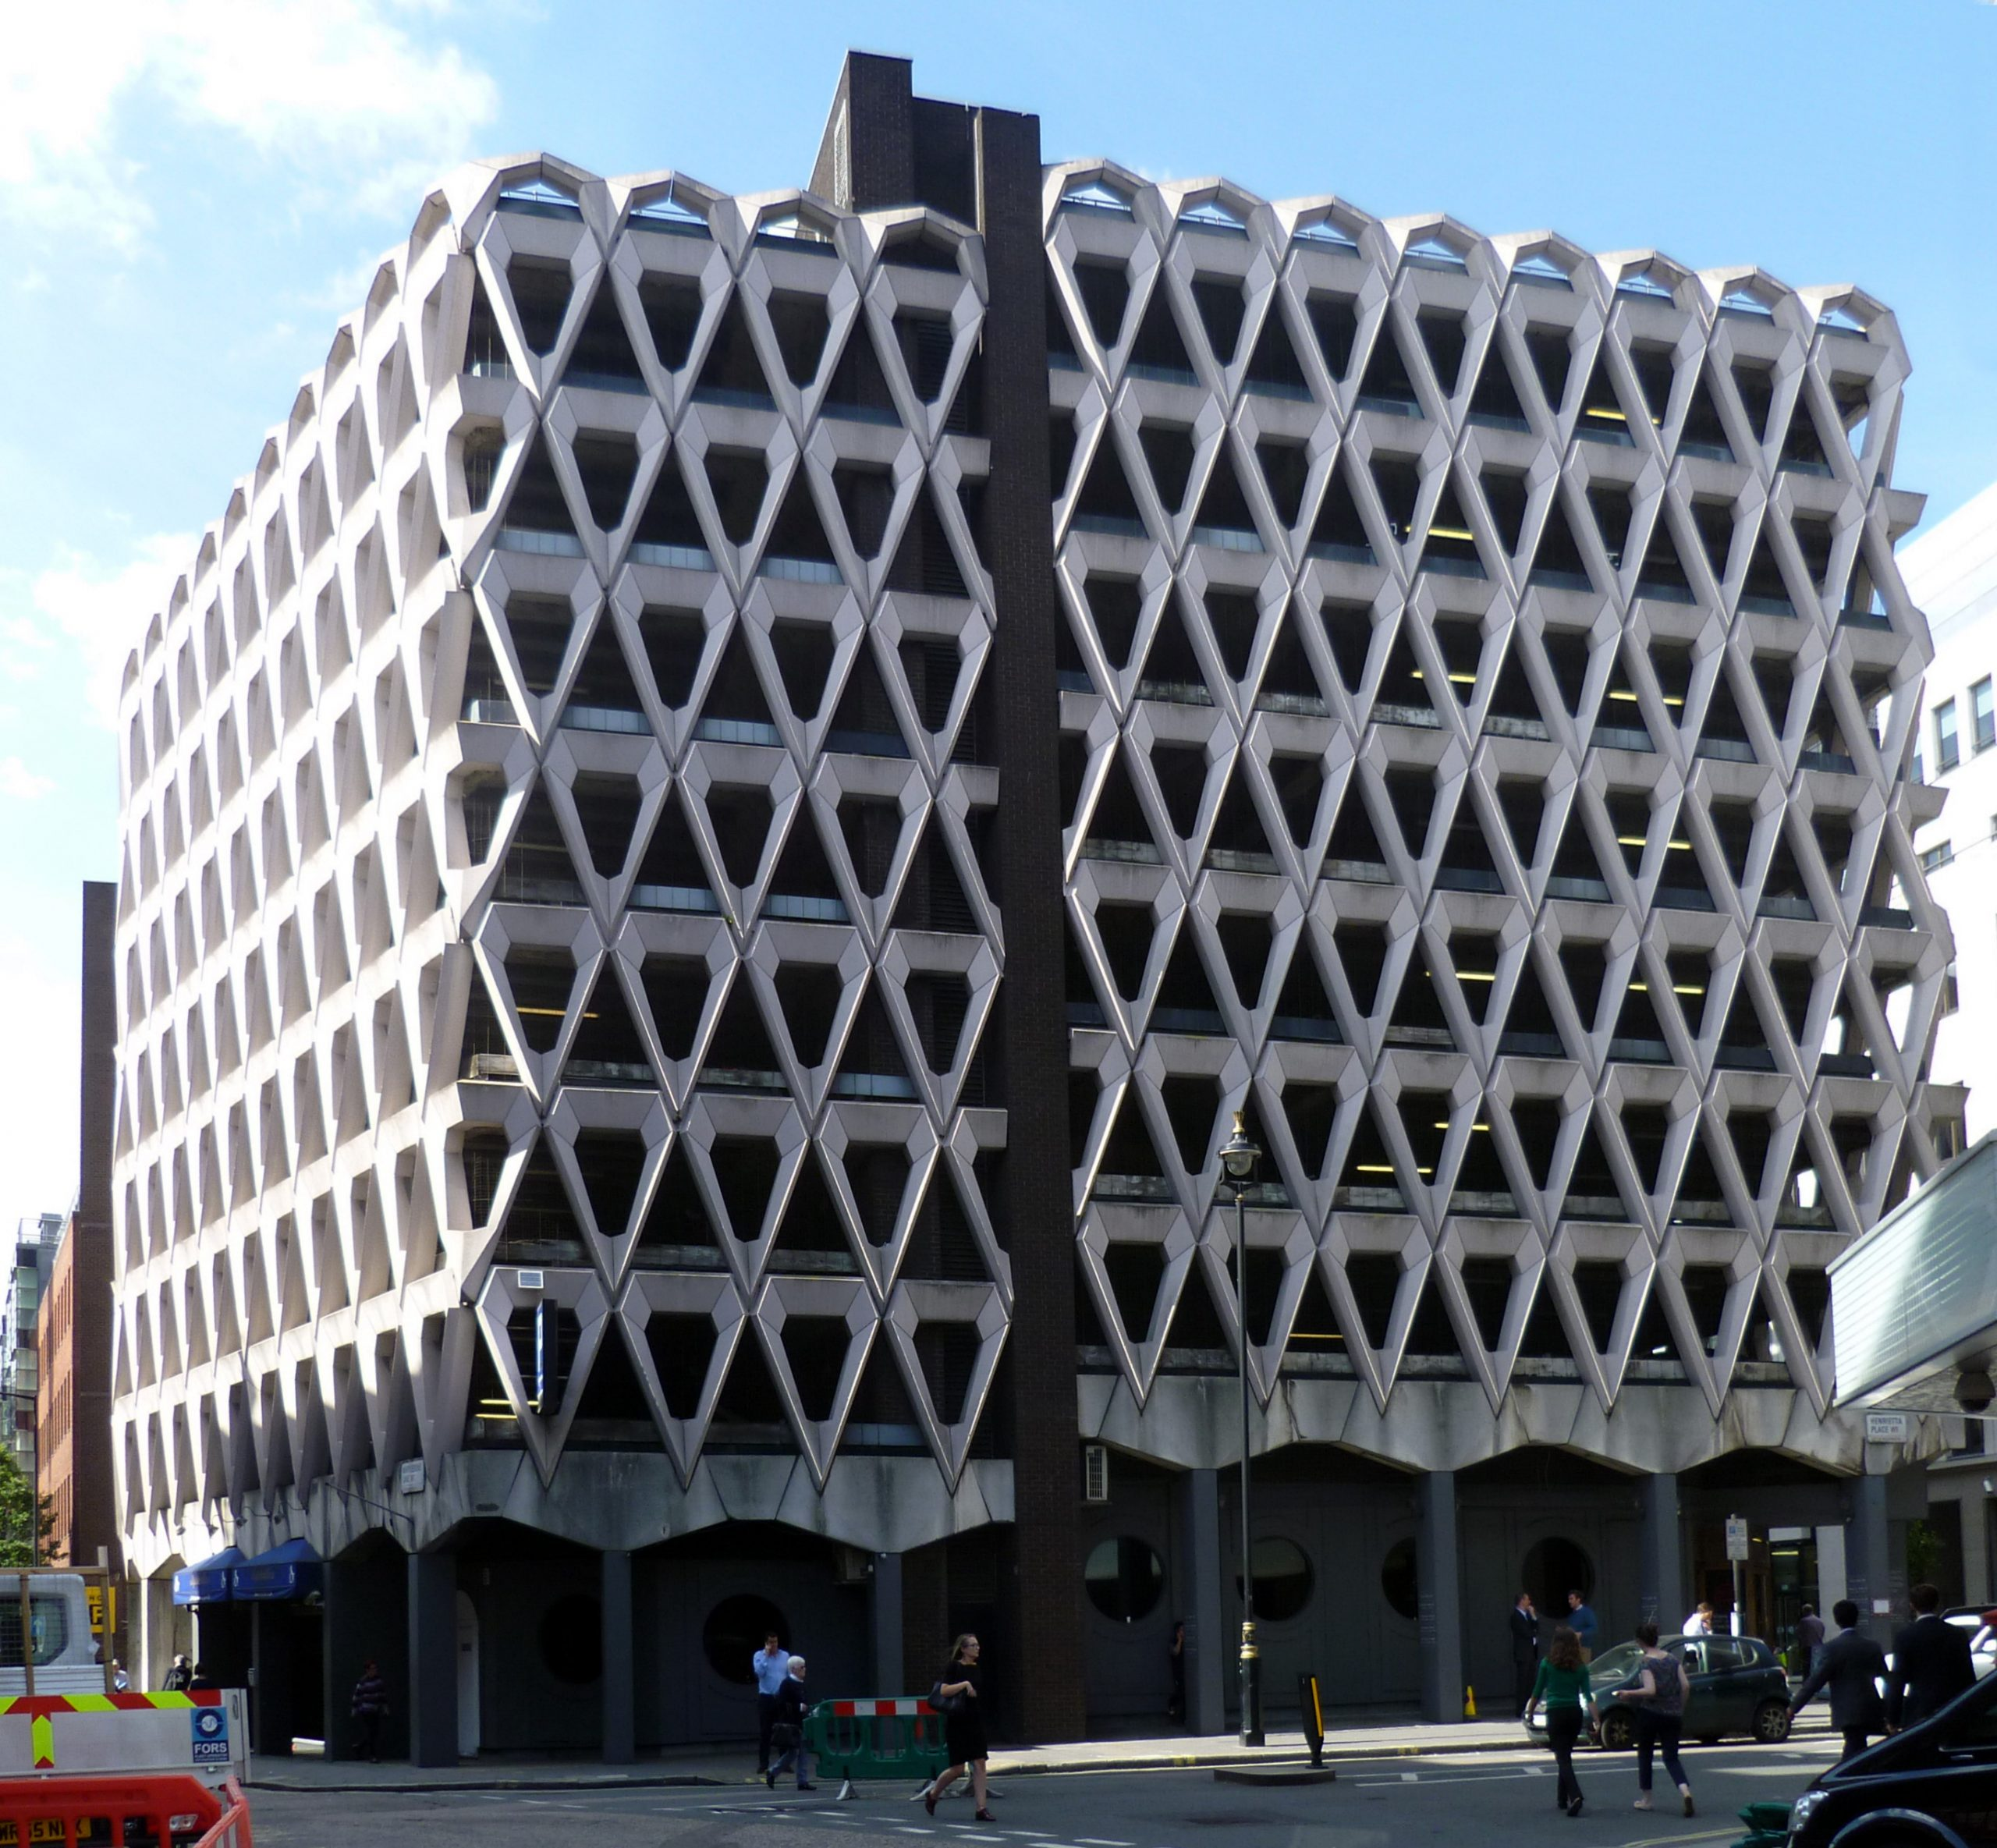 File photo of the Welbeck Street car park in Marylebone, London. The site, taken over by Shiva Hotels, will see a luxury hospitality property by 2023.